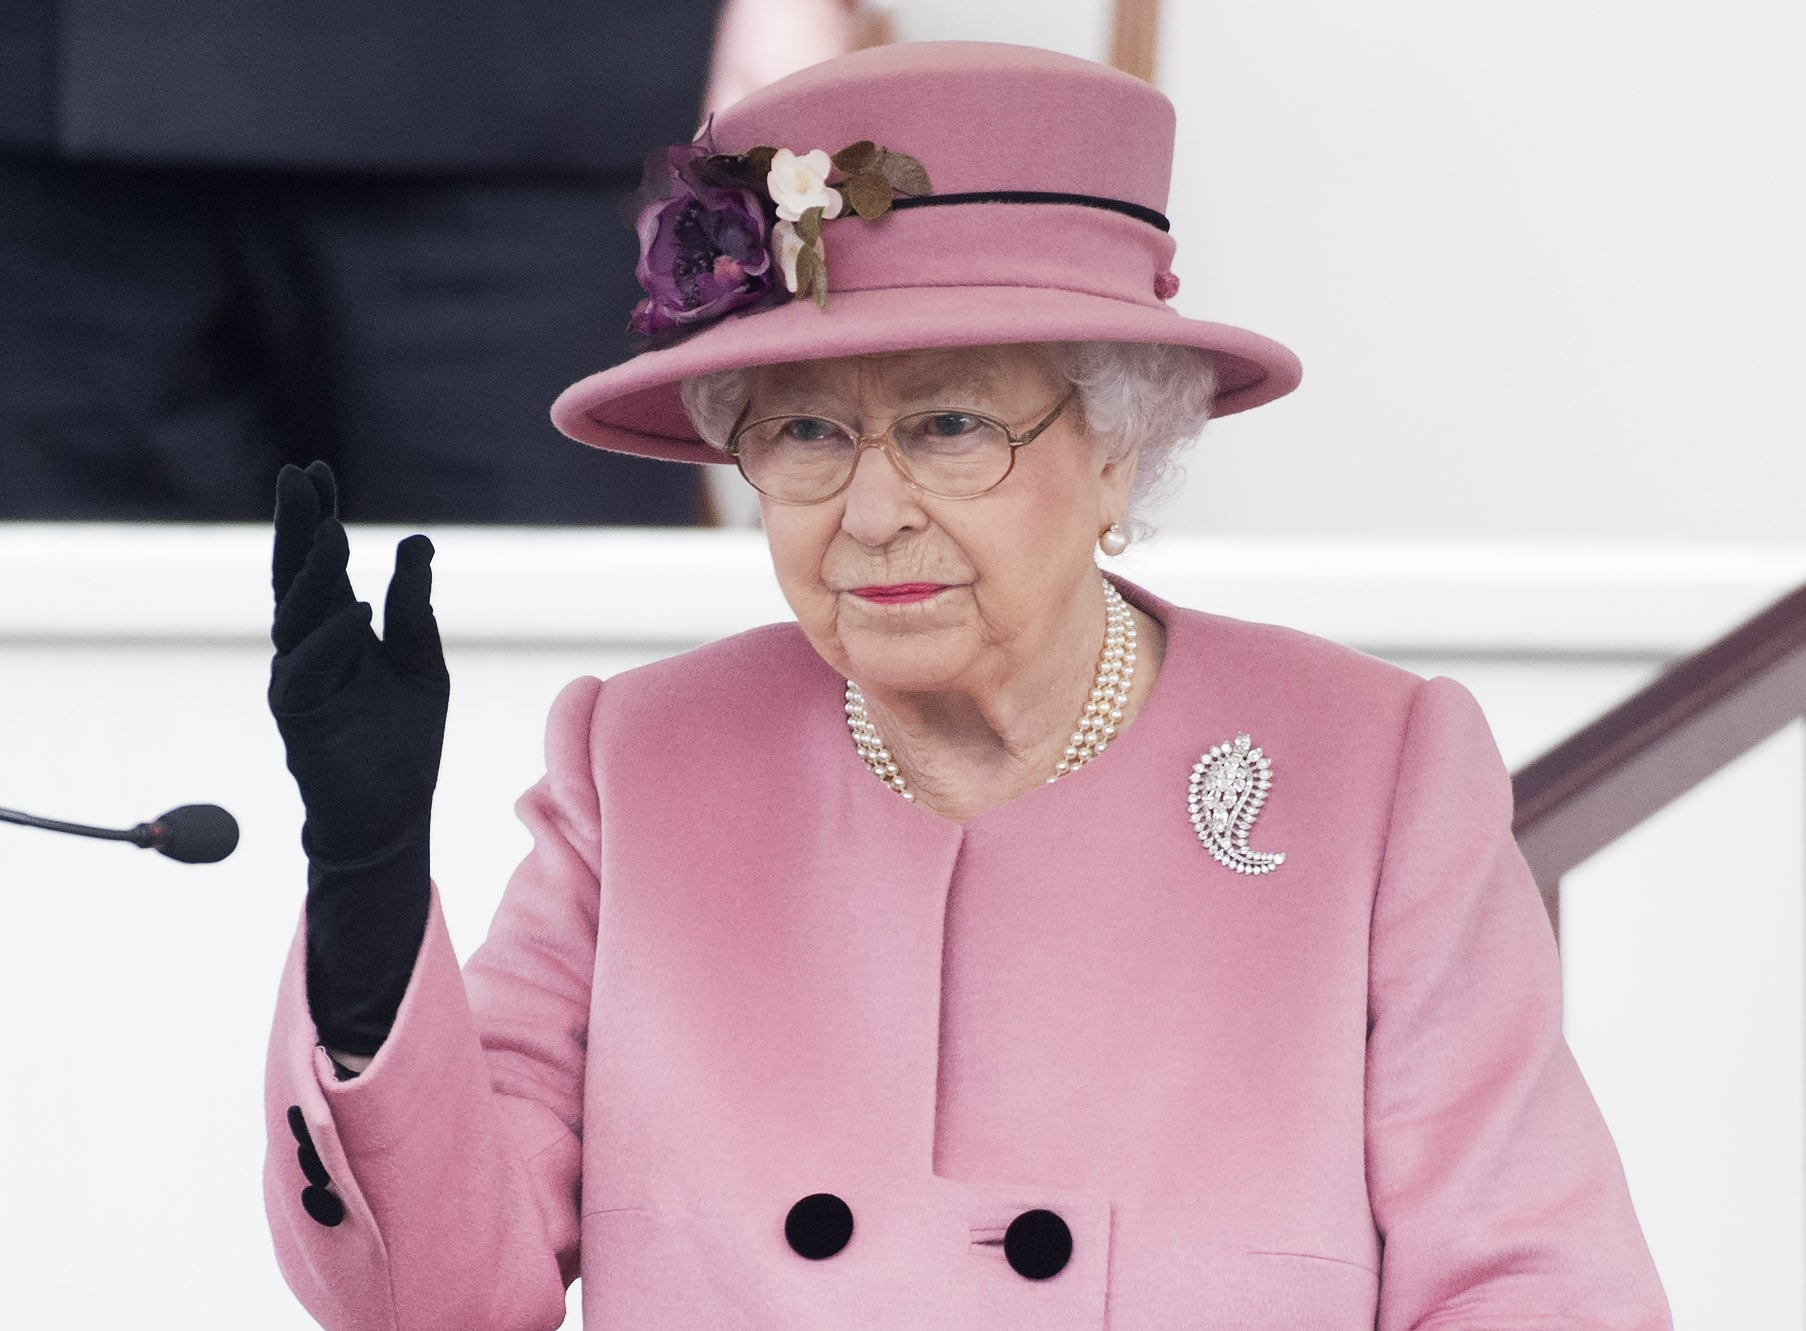 PLYMOUTH, ENGLAND - MARCH 27:  Her Majesty Queen Elizabeth II attends the decommissioning ceremony for HMS Ocean on March 27, 2018 in Plymouth, England.  (Photo by Samir Hussein/WireImage)